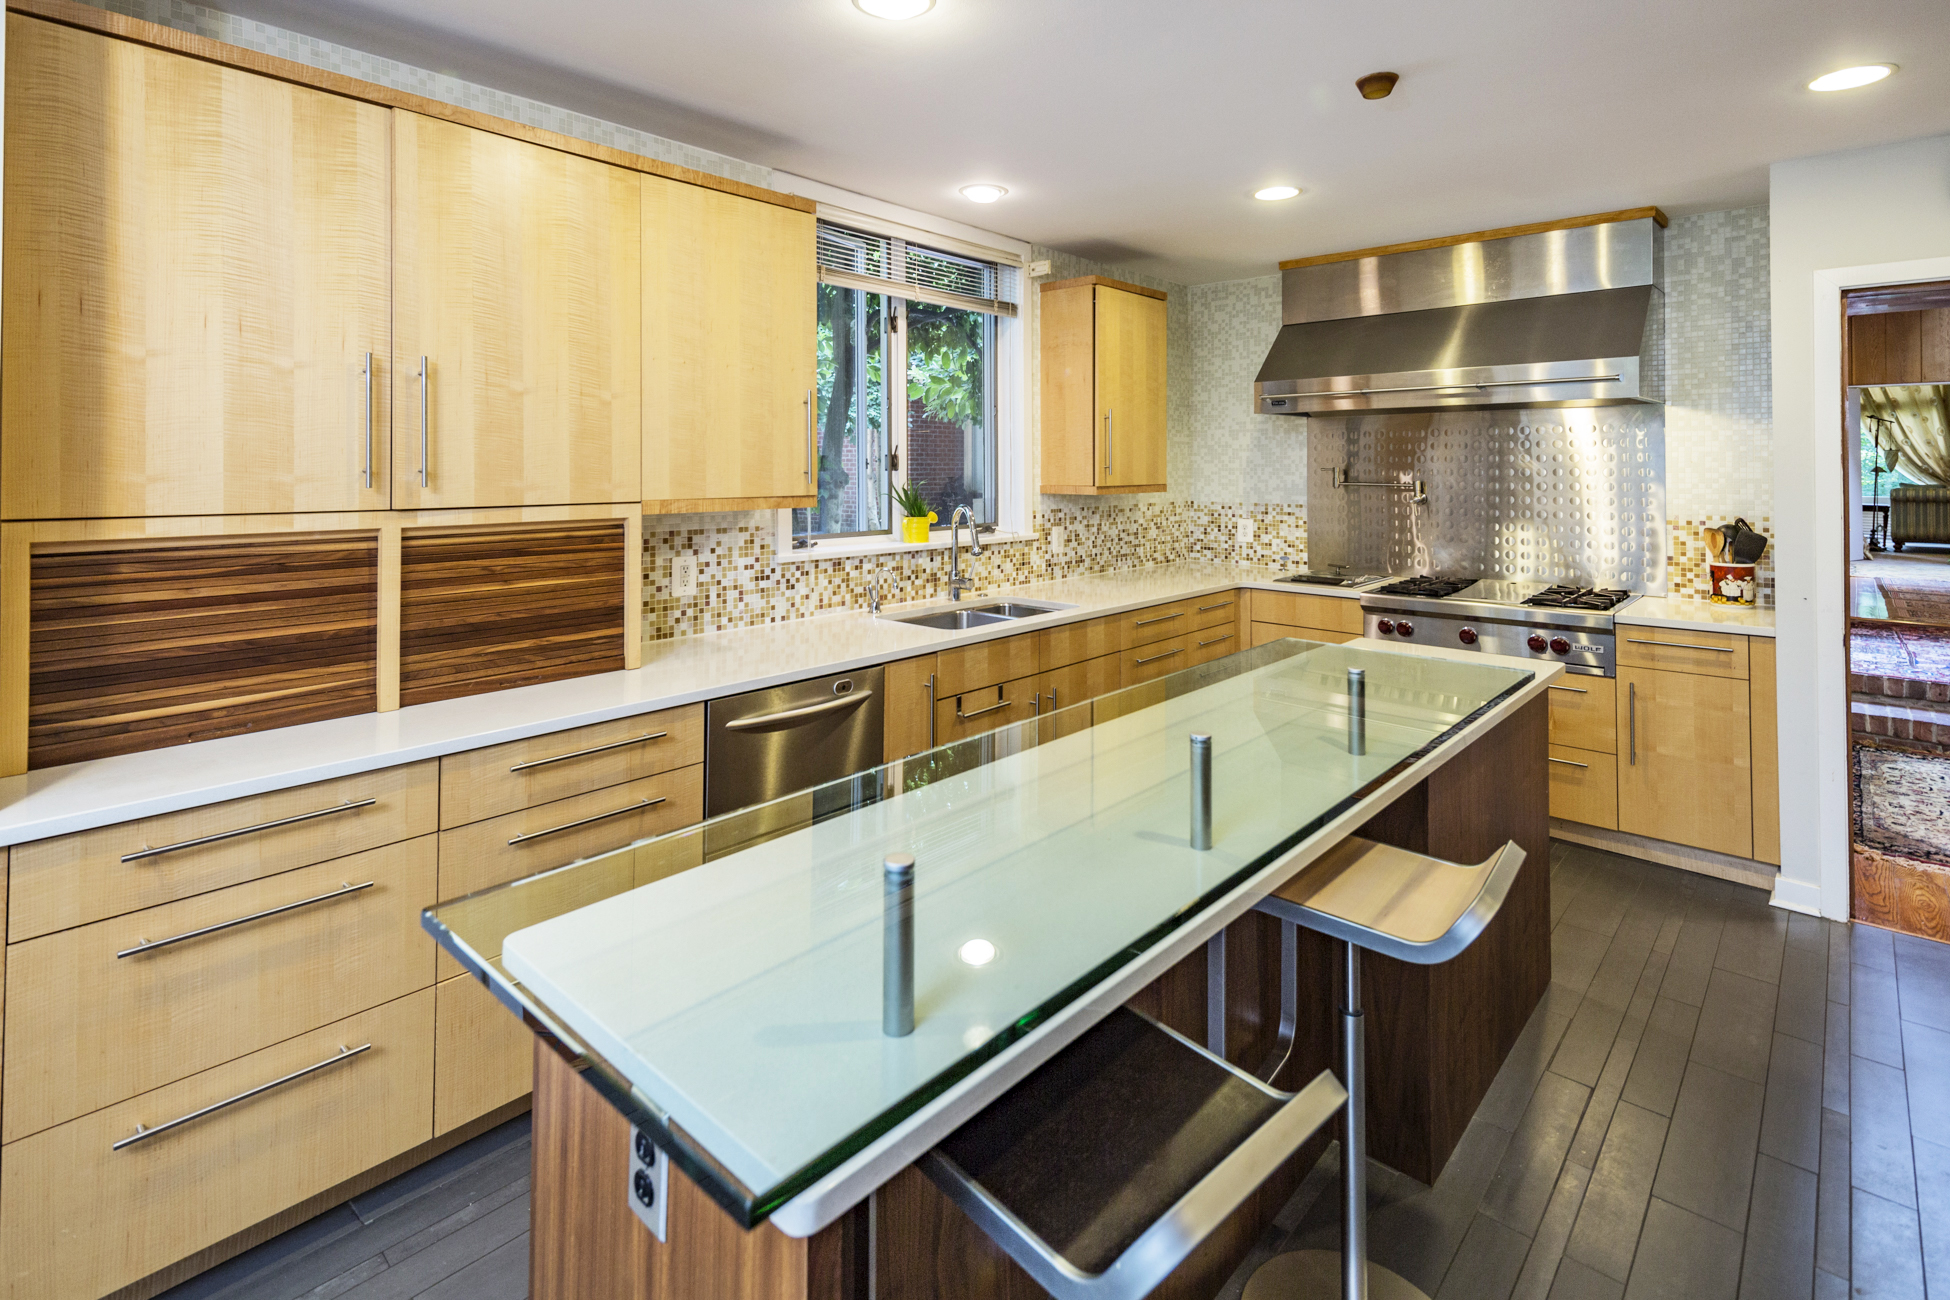 Additional photo for property listing at Impressive Space in Modern Princeton Home 1147 Stuart Road Princeton, Нью-Джерси 08540 Соединенные Штаты